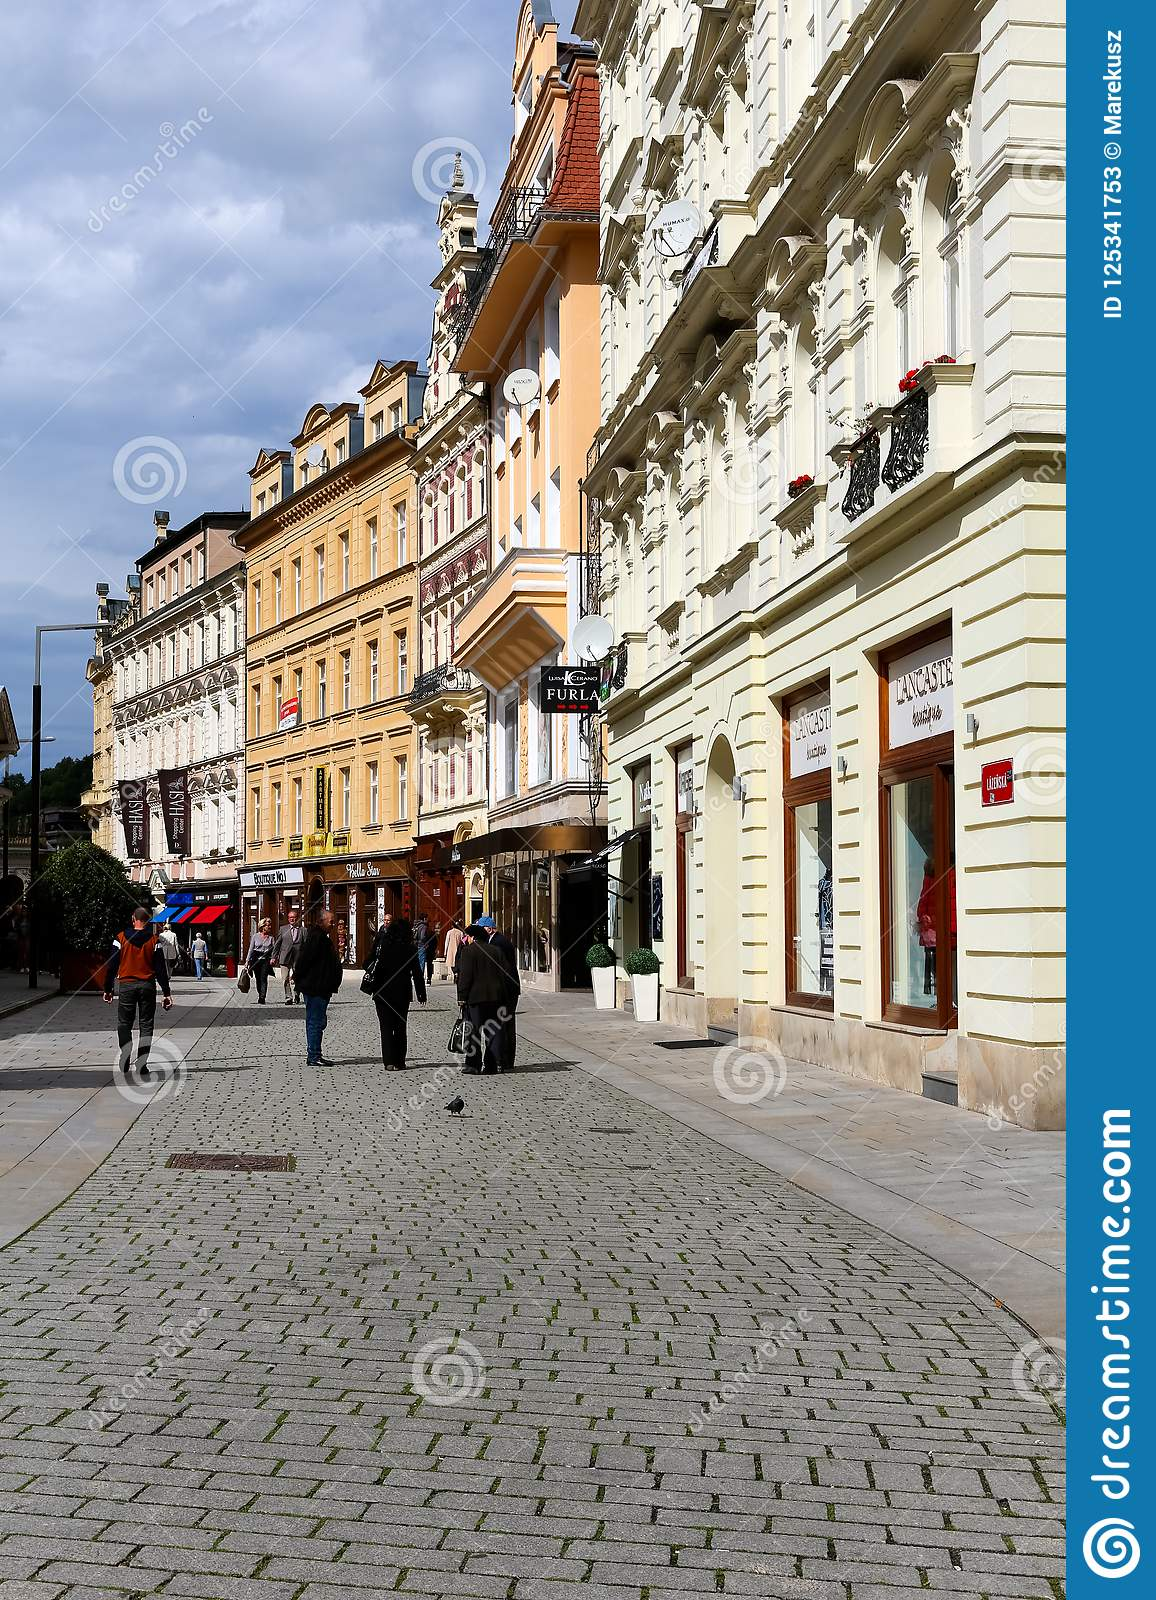 View of the street and facades of buildings